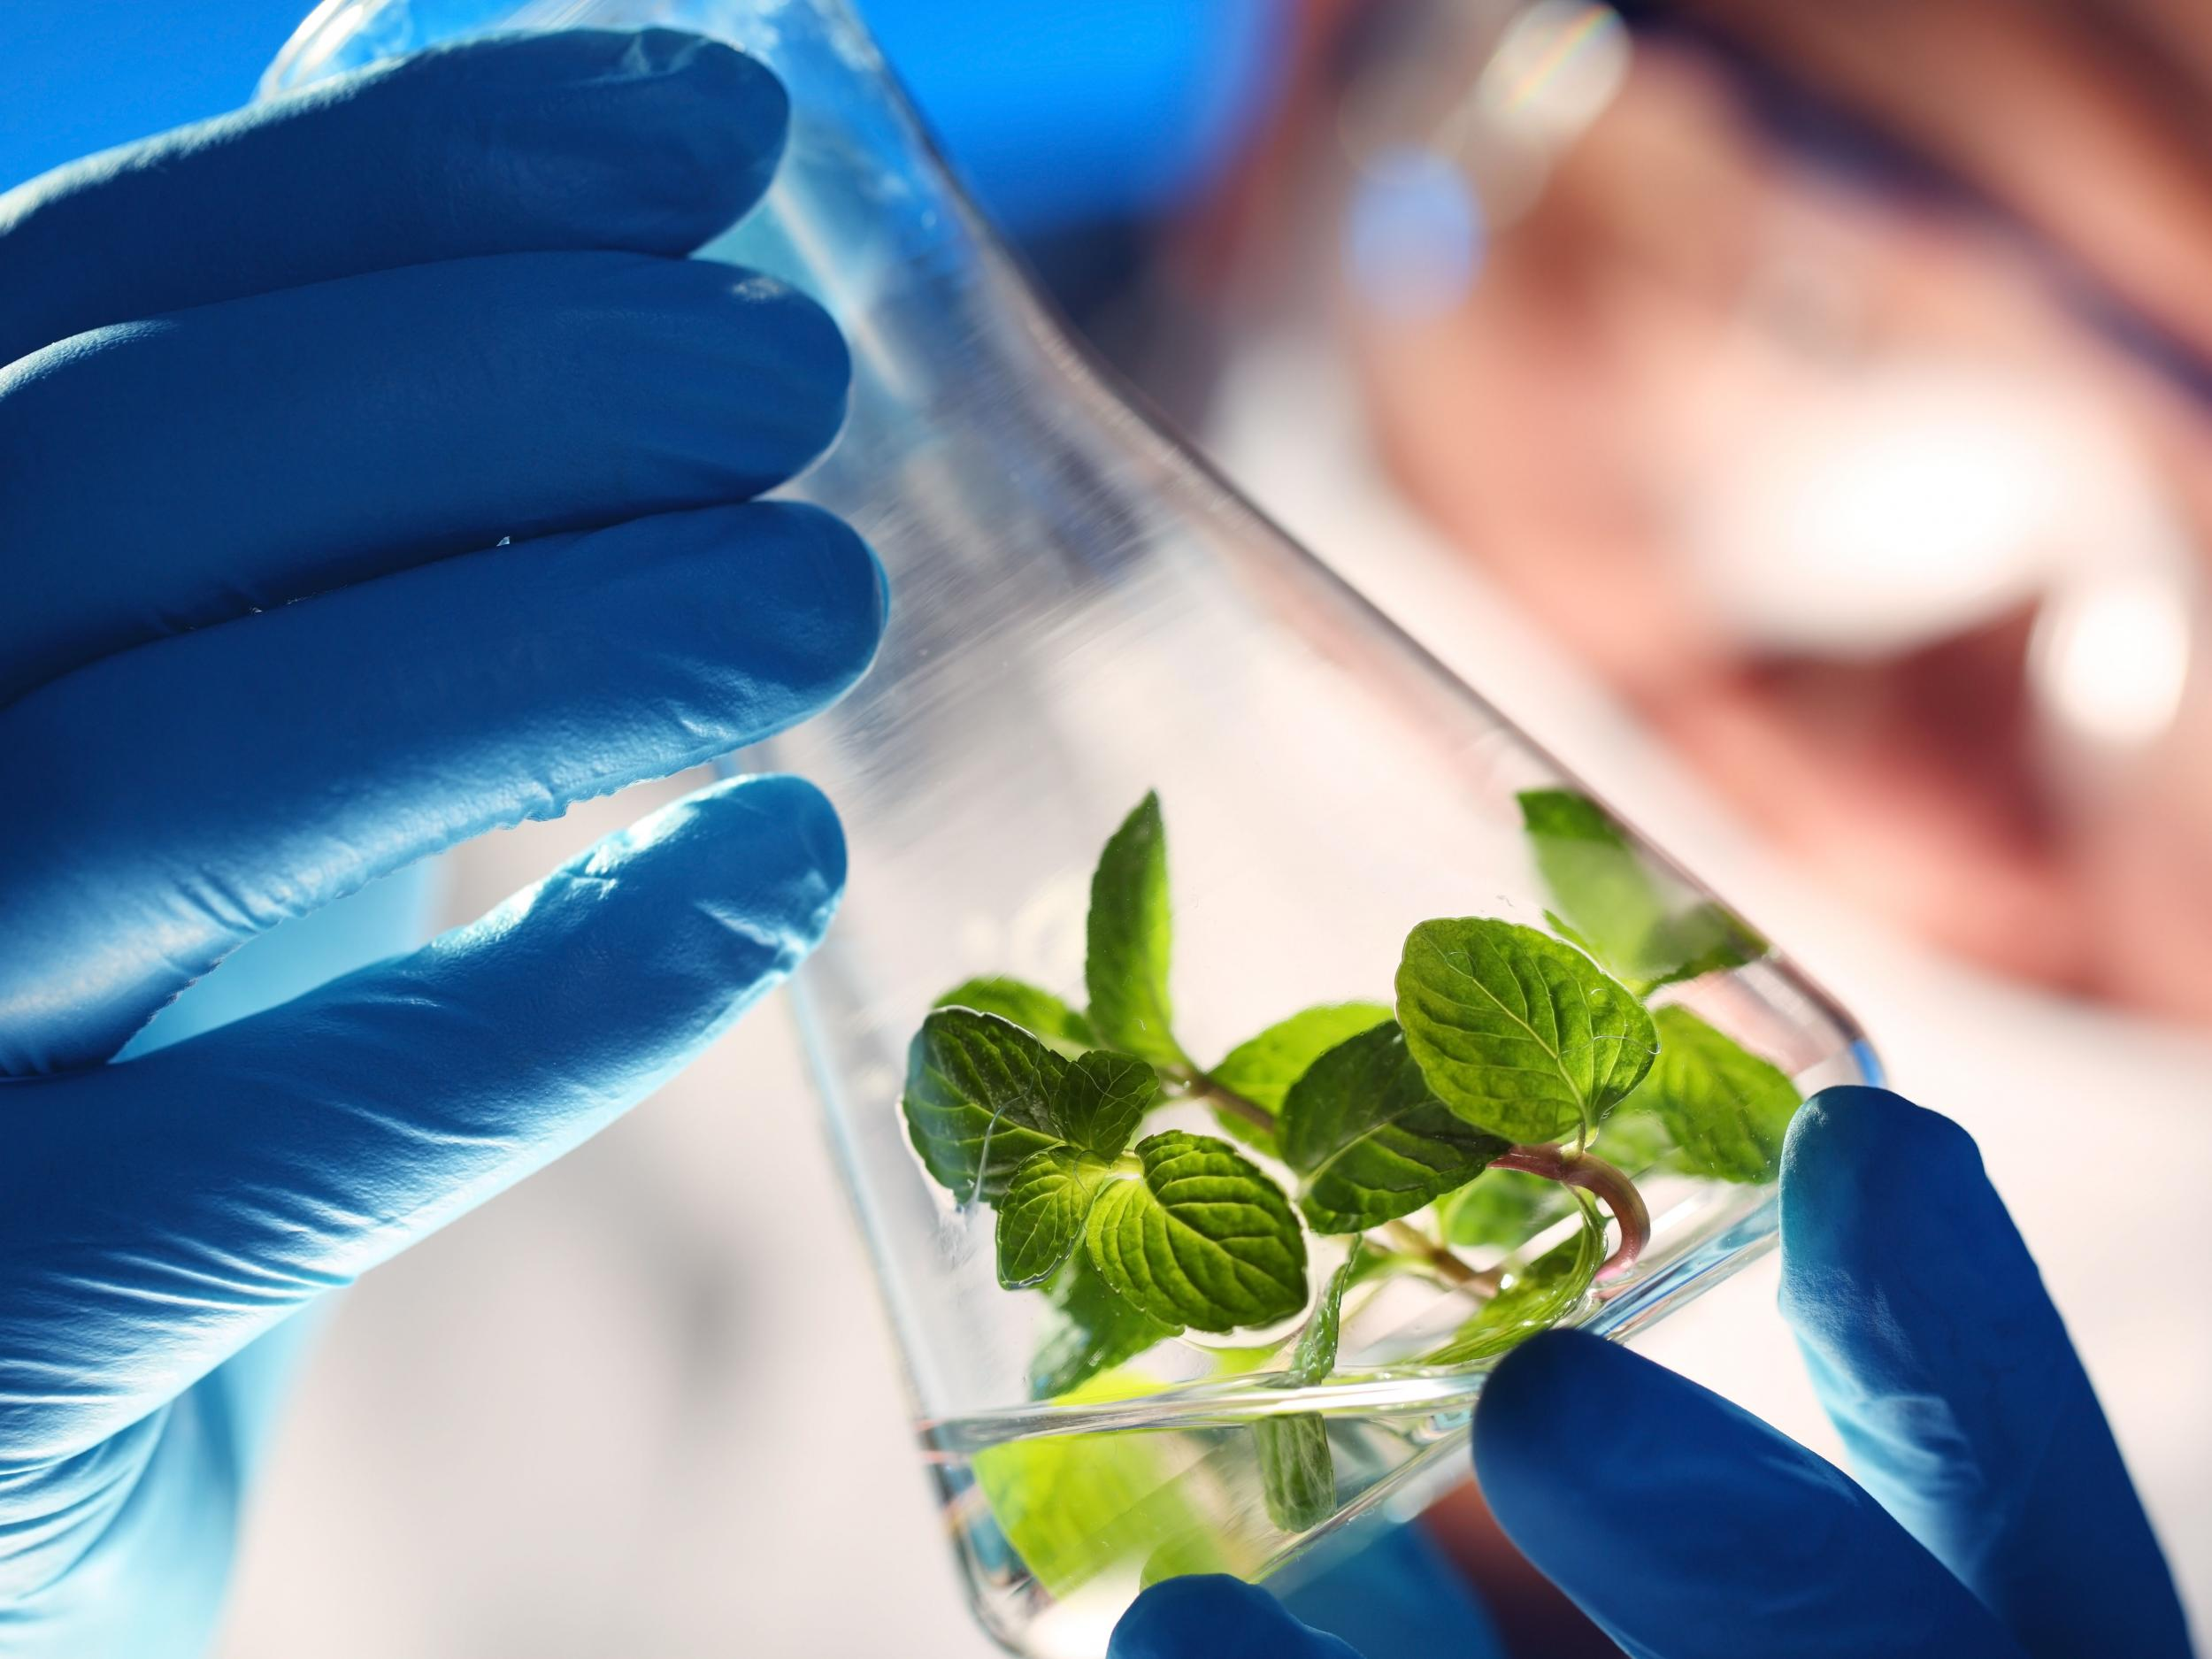 US military to develop genetically modified plants to spy for them